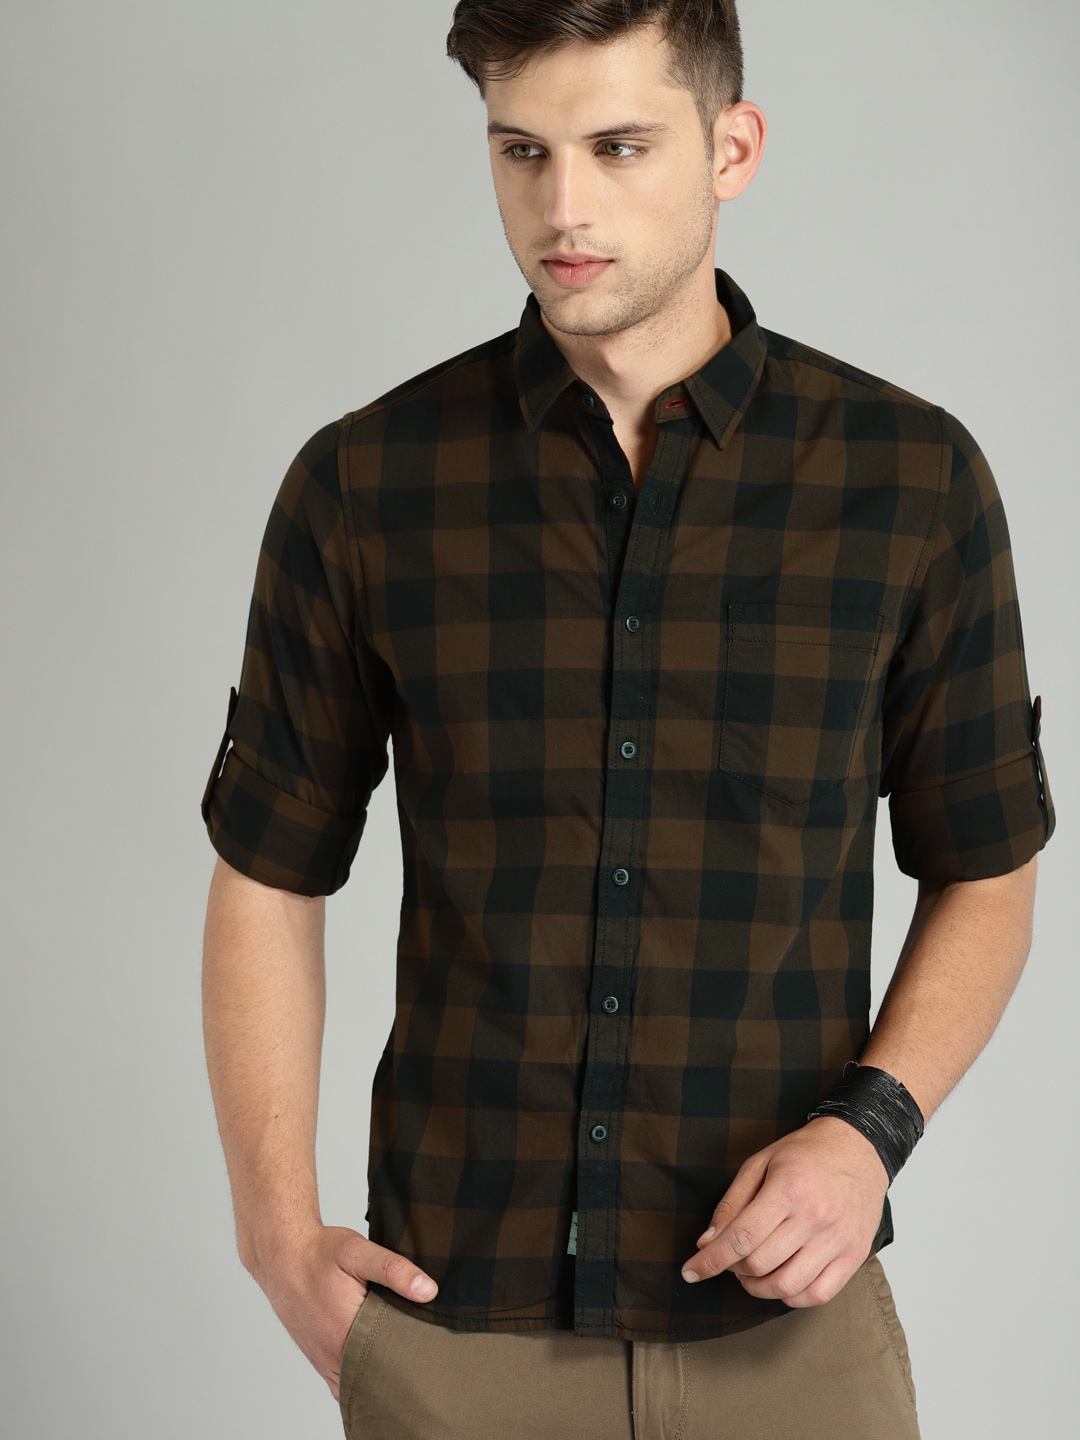 Fashion style Shirts t Casual for men for girls